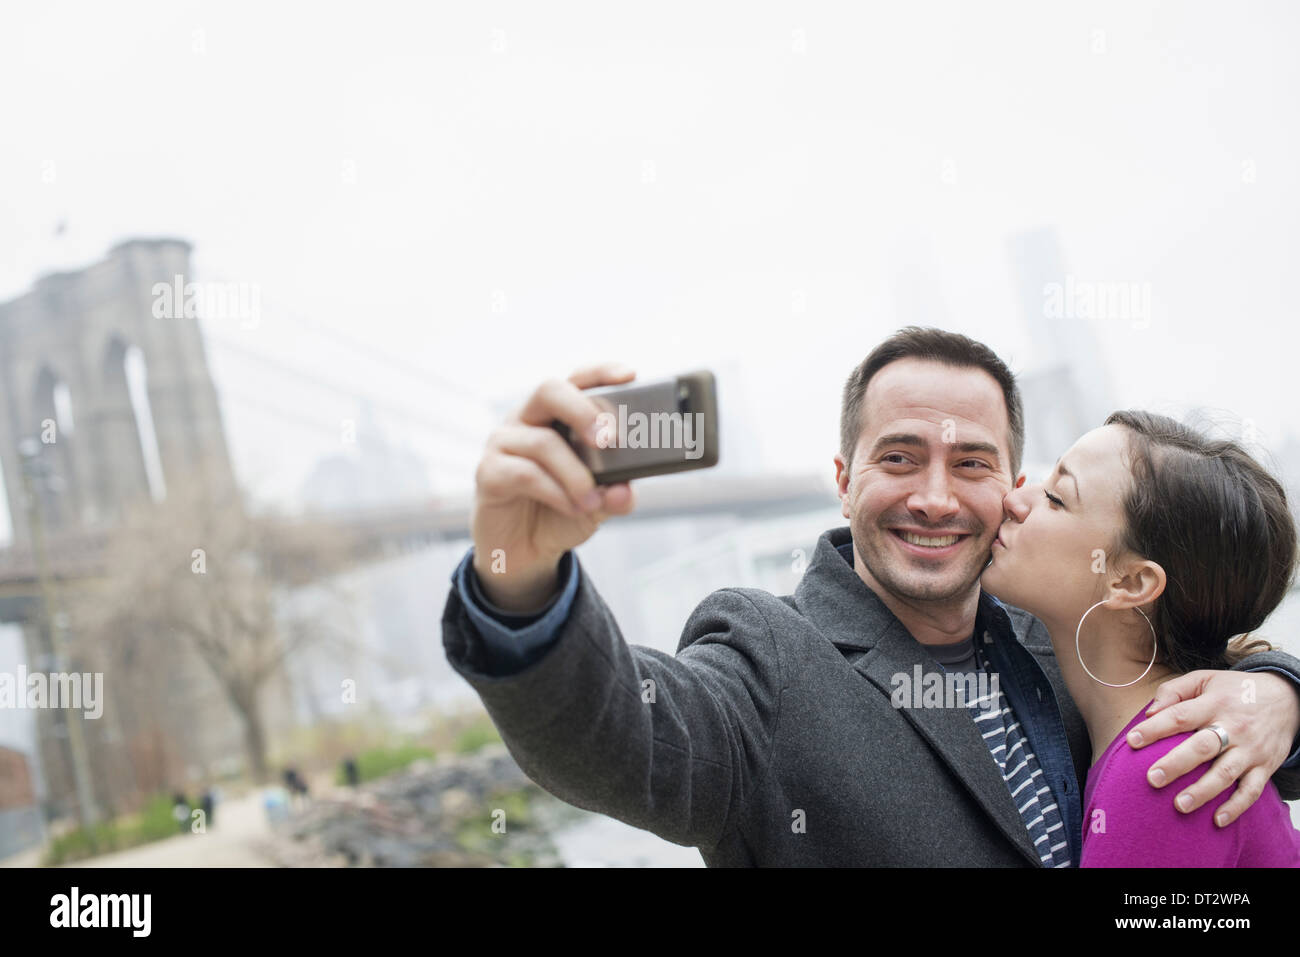 Brooklyn Bridge crossing over the East River A couple taking a picture with a phone a selfy of themselves Stock Photo